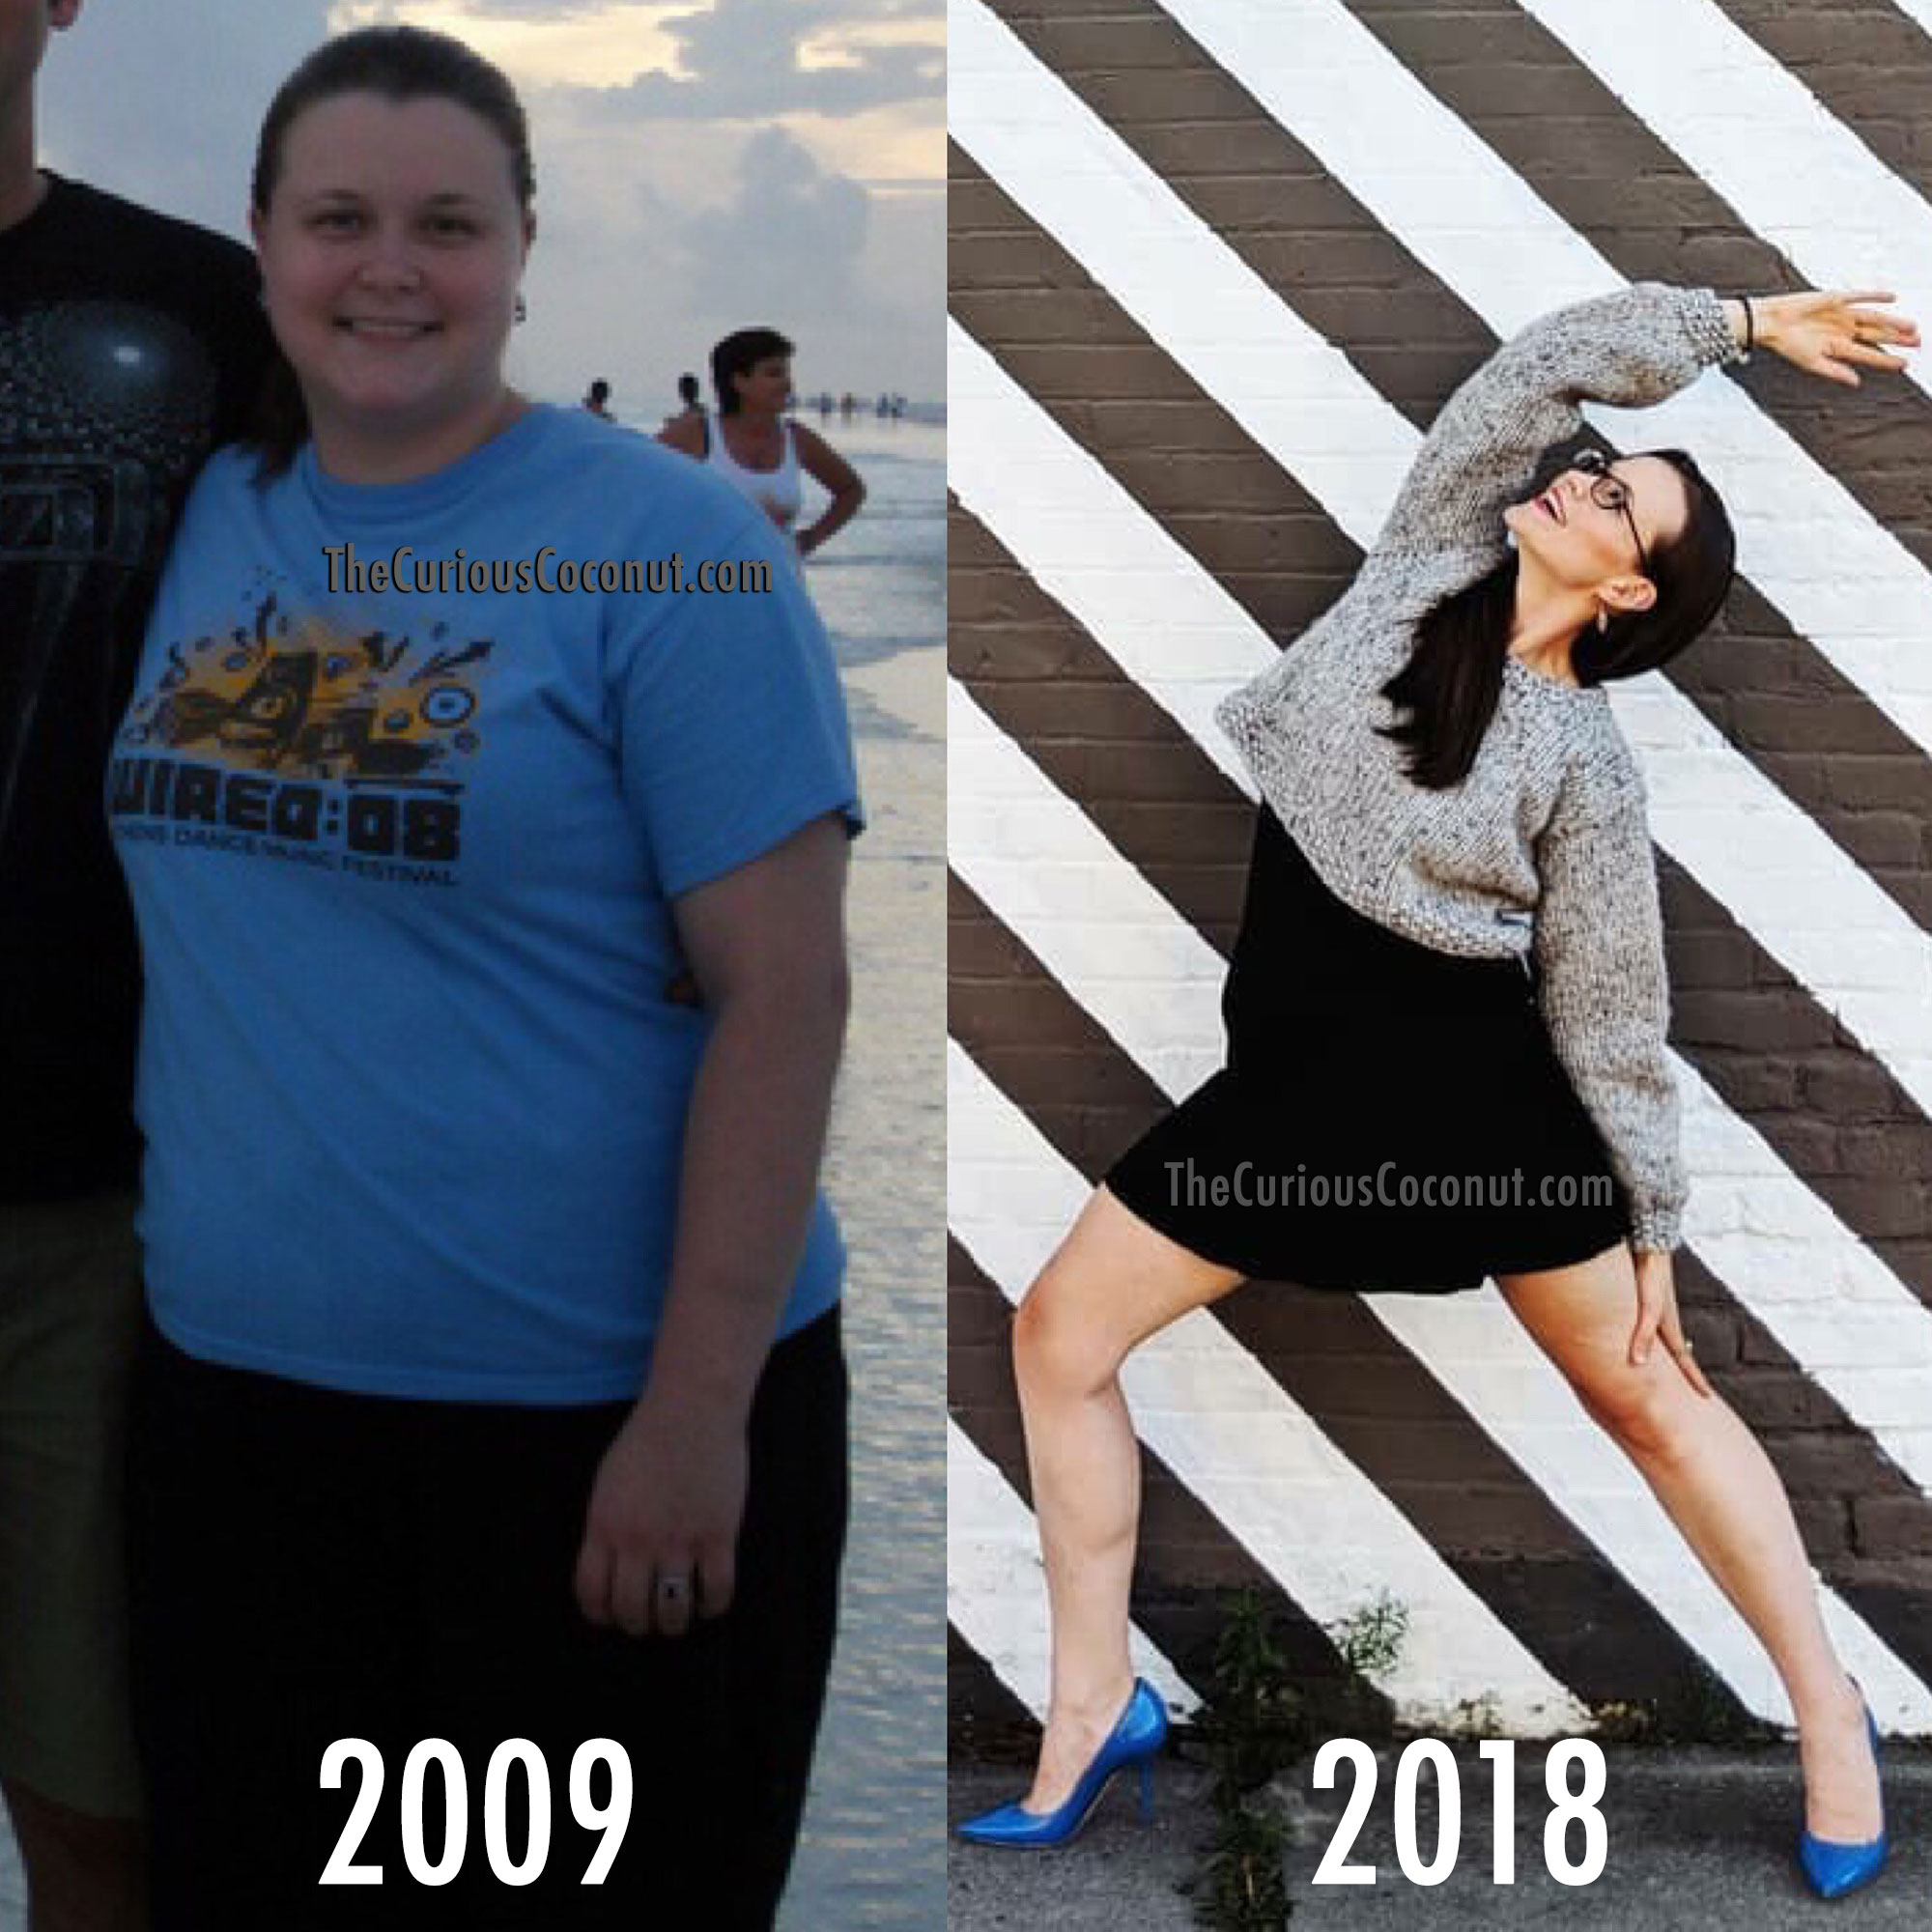 On the left I was very sick, inflamed, and suffering through the worst of my HS flares. I've maintained the 80 lb weight loss all these years!